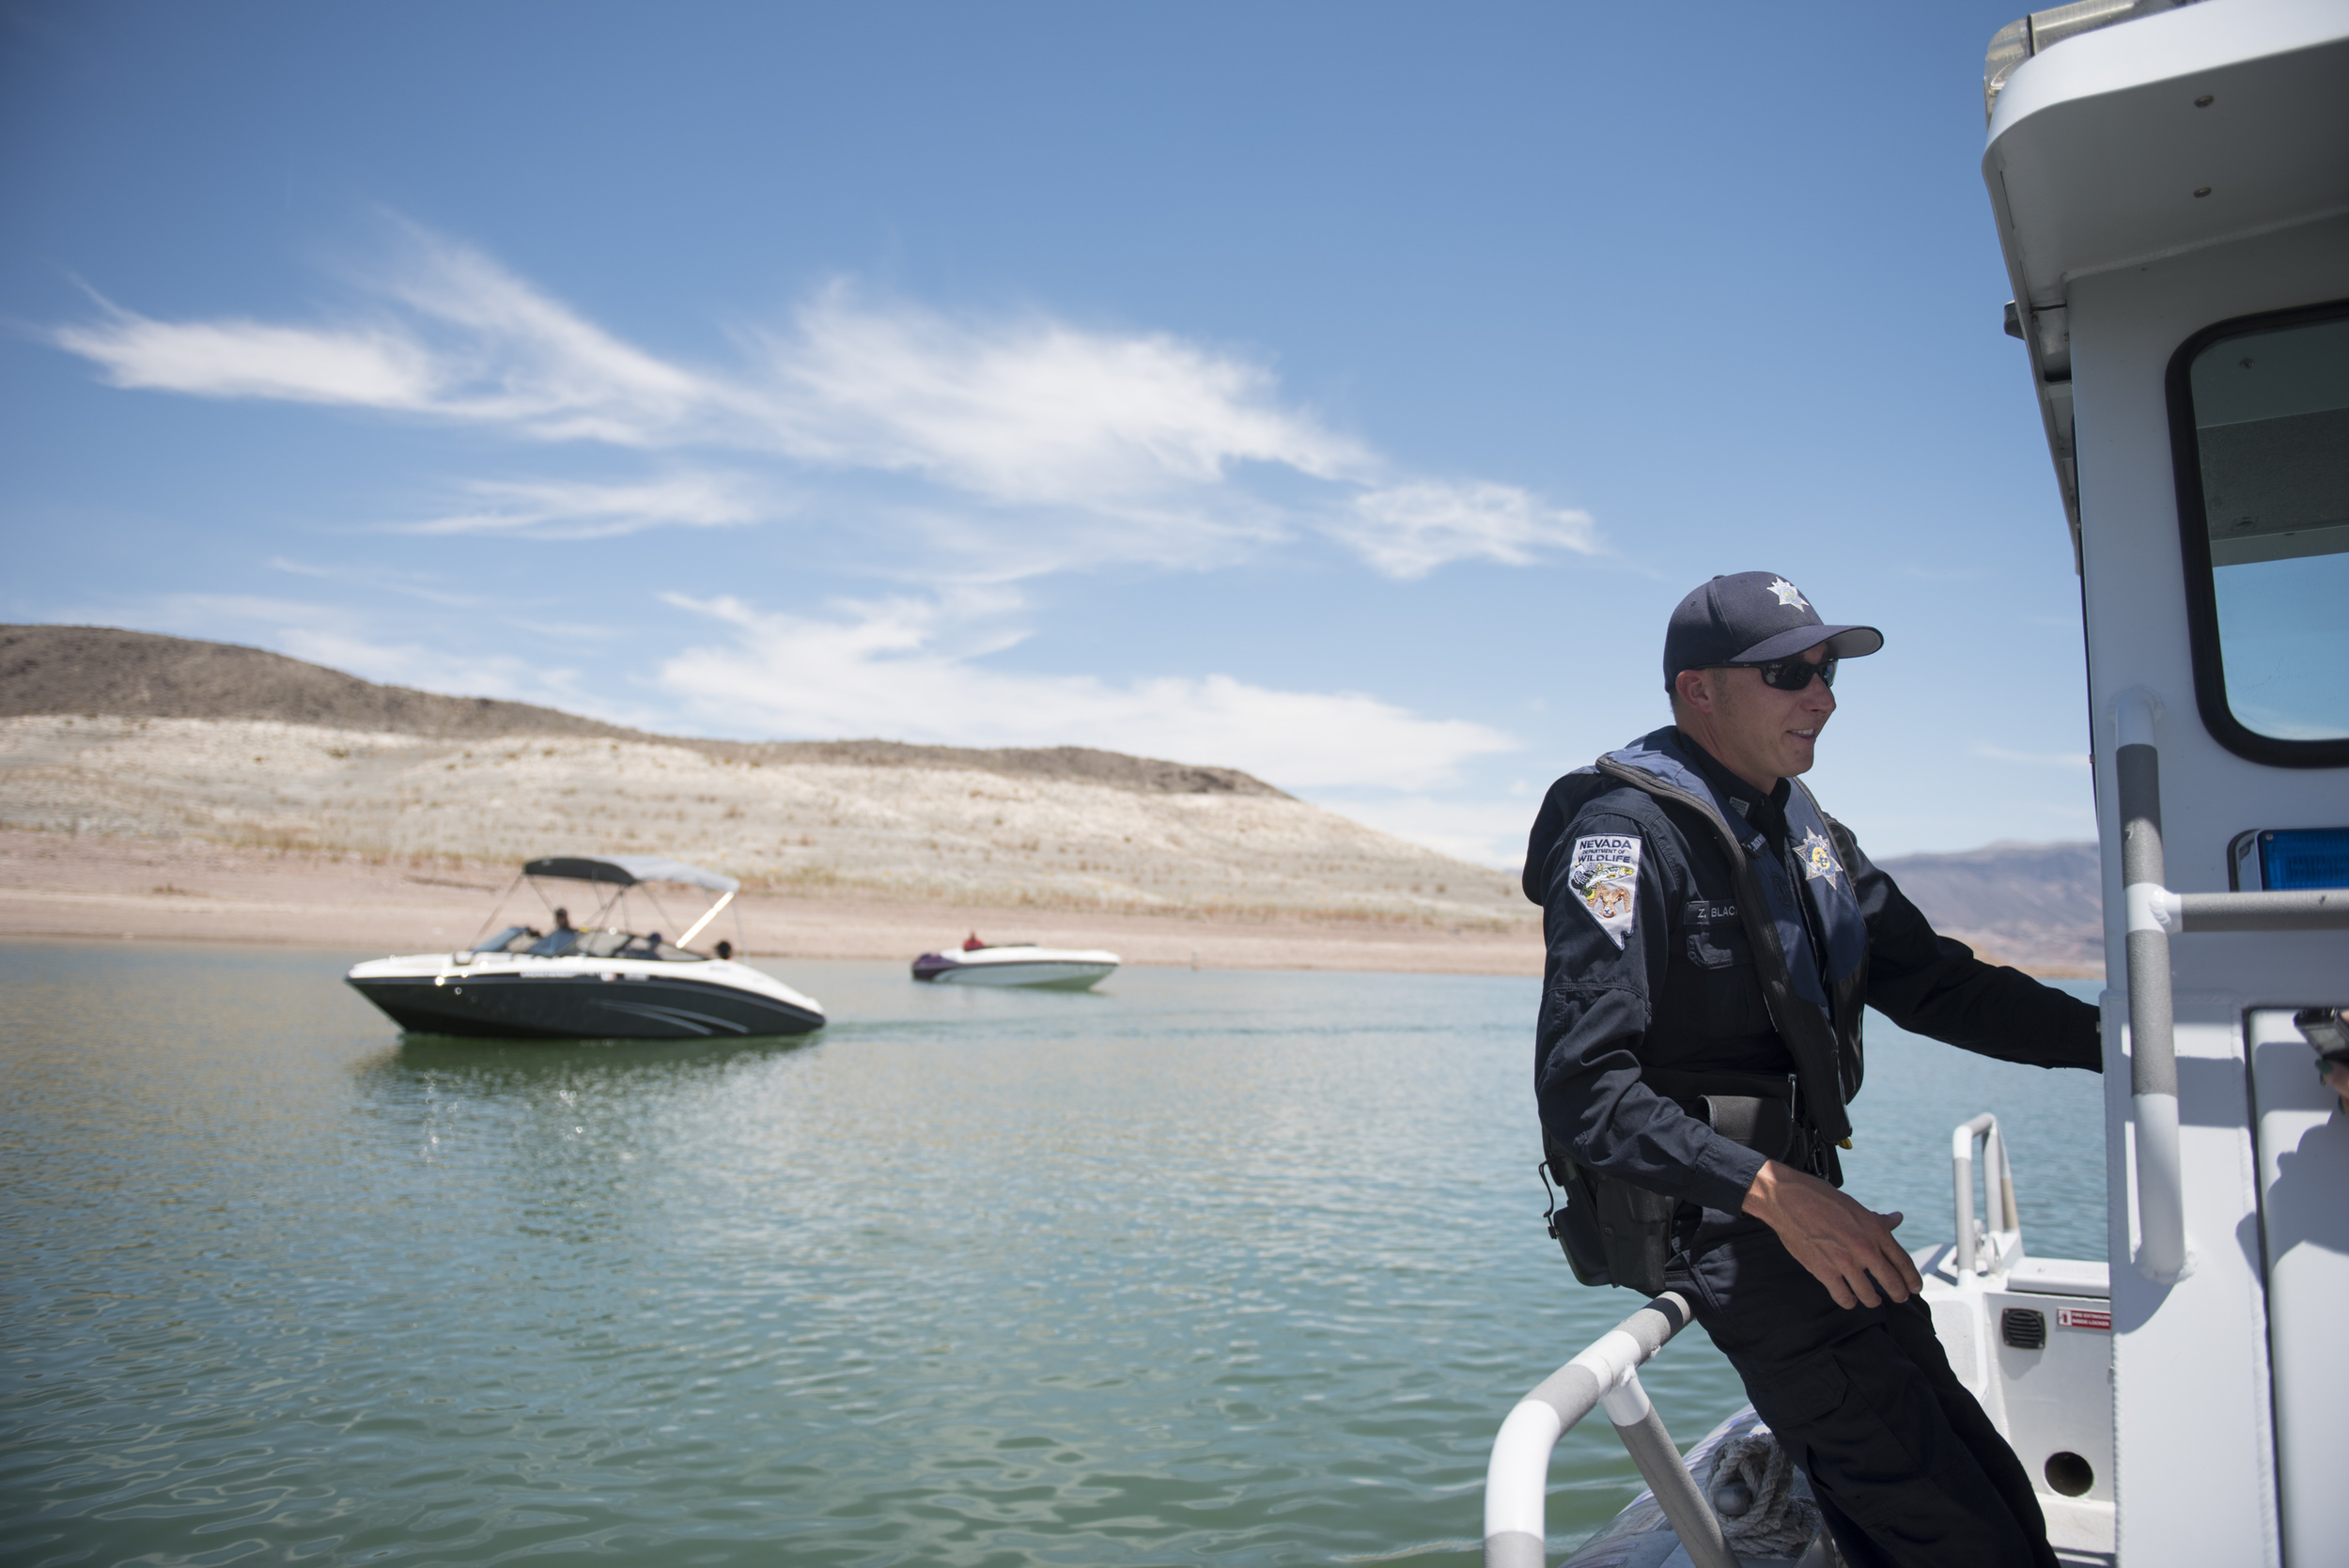 Zach Blackwood, game warden/police officer with the Nevada Department of Wildlife, gives a tour showing Lake Mead's receding waterline and the dangers it poses to boaters in Boulder City, Friday, July 3, 2015.(Jason Ogulnik/Las Vegas Review-Journal)